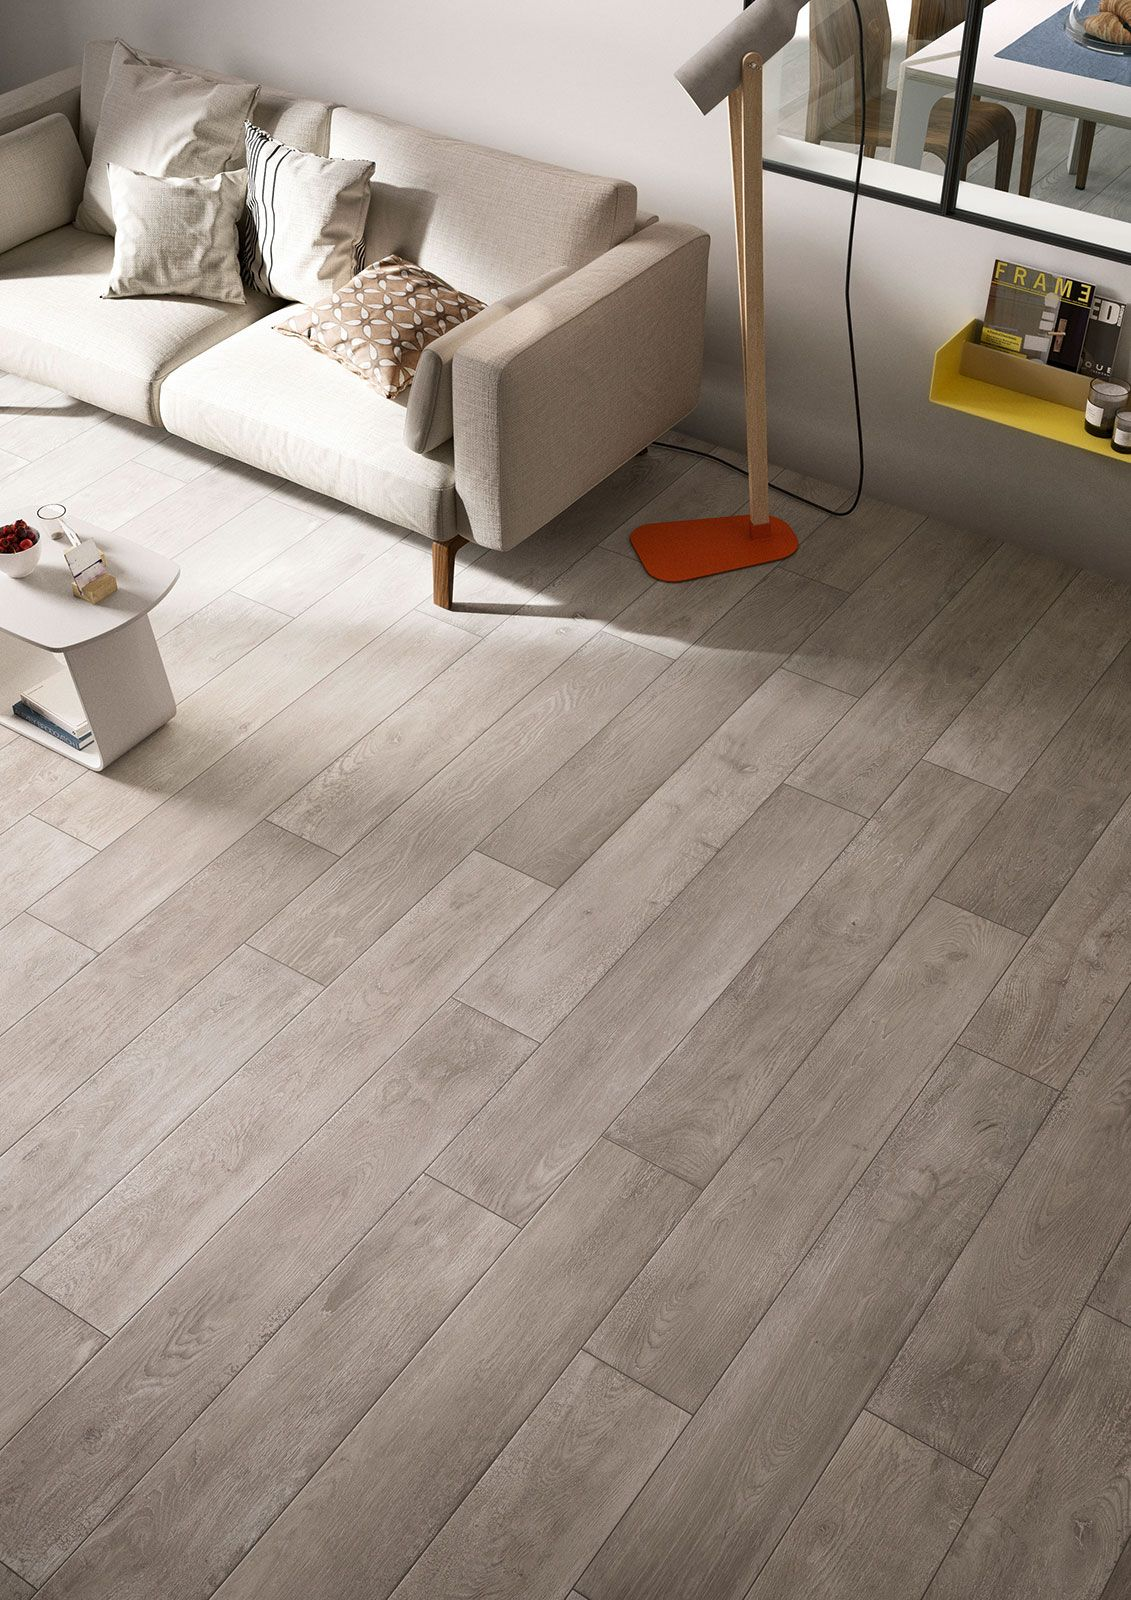 wooden floor tiles treverktime ceramic tiles marazzi_6535 HUJZBZT